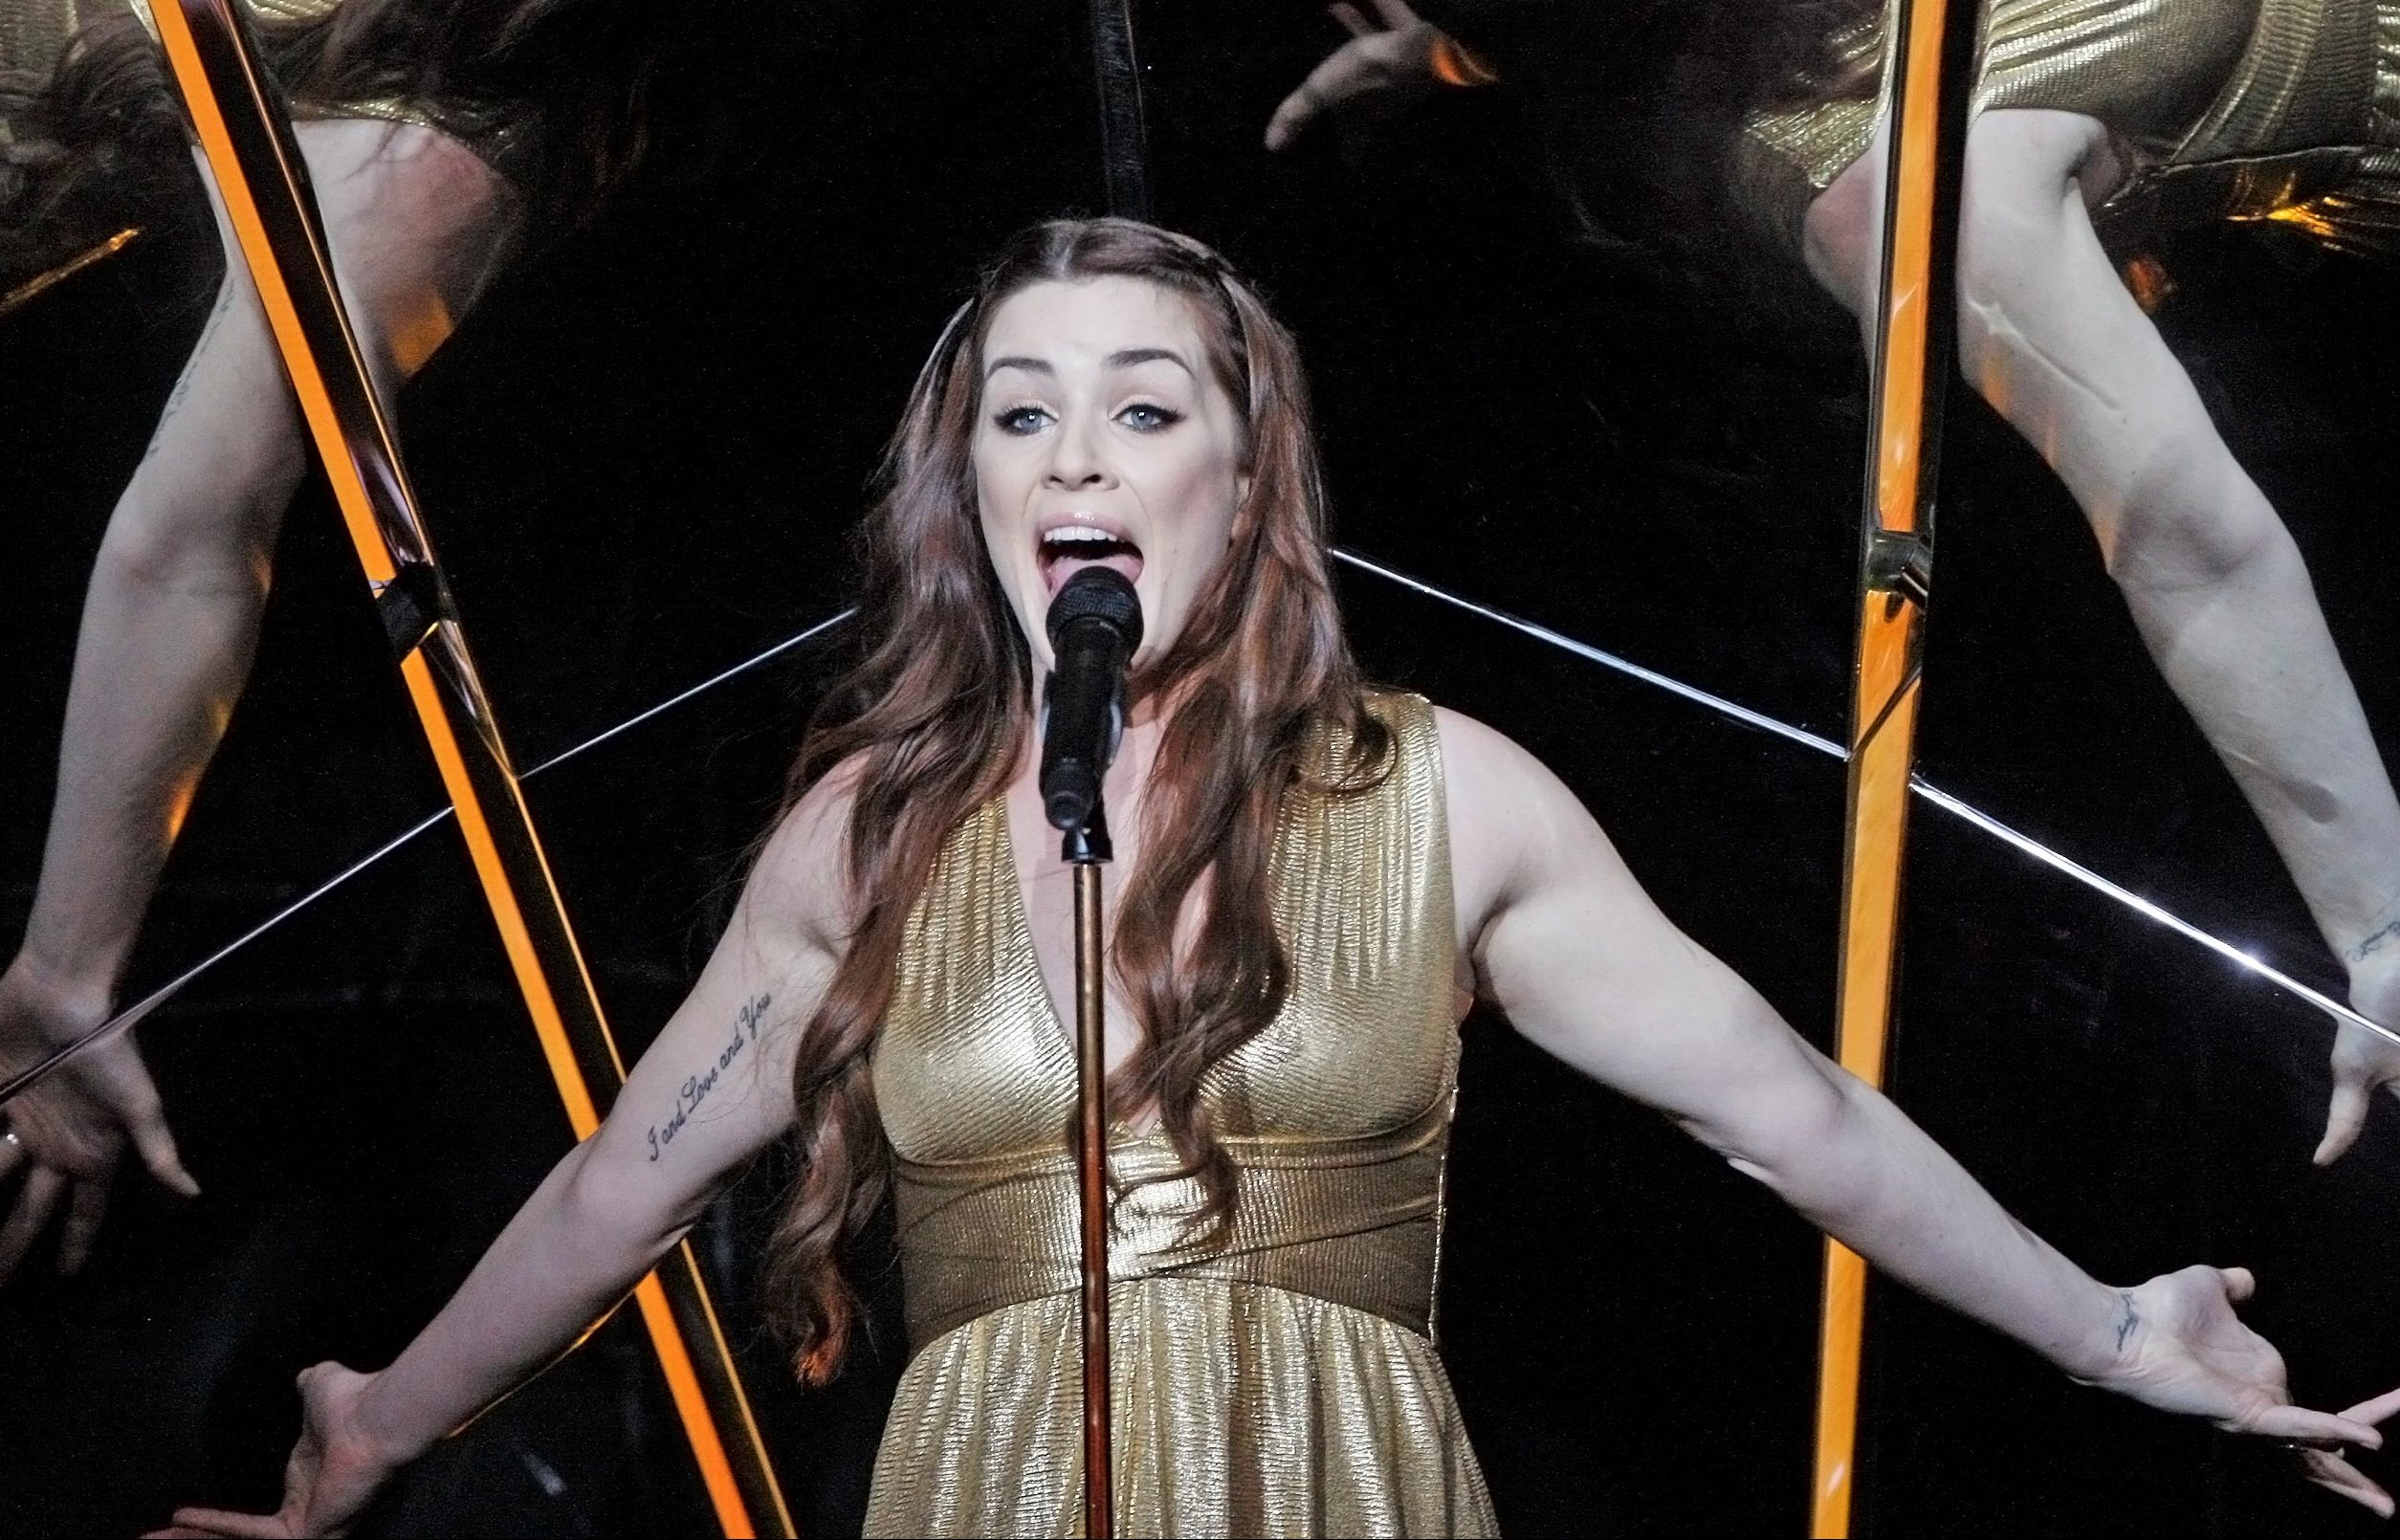 United Kingdom's Lucie Jones defies odds to become fifth favourite in Eurovision Song Contest odds